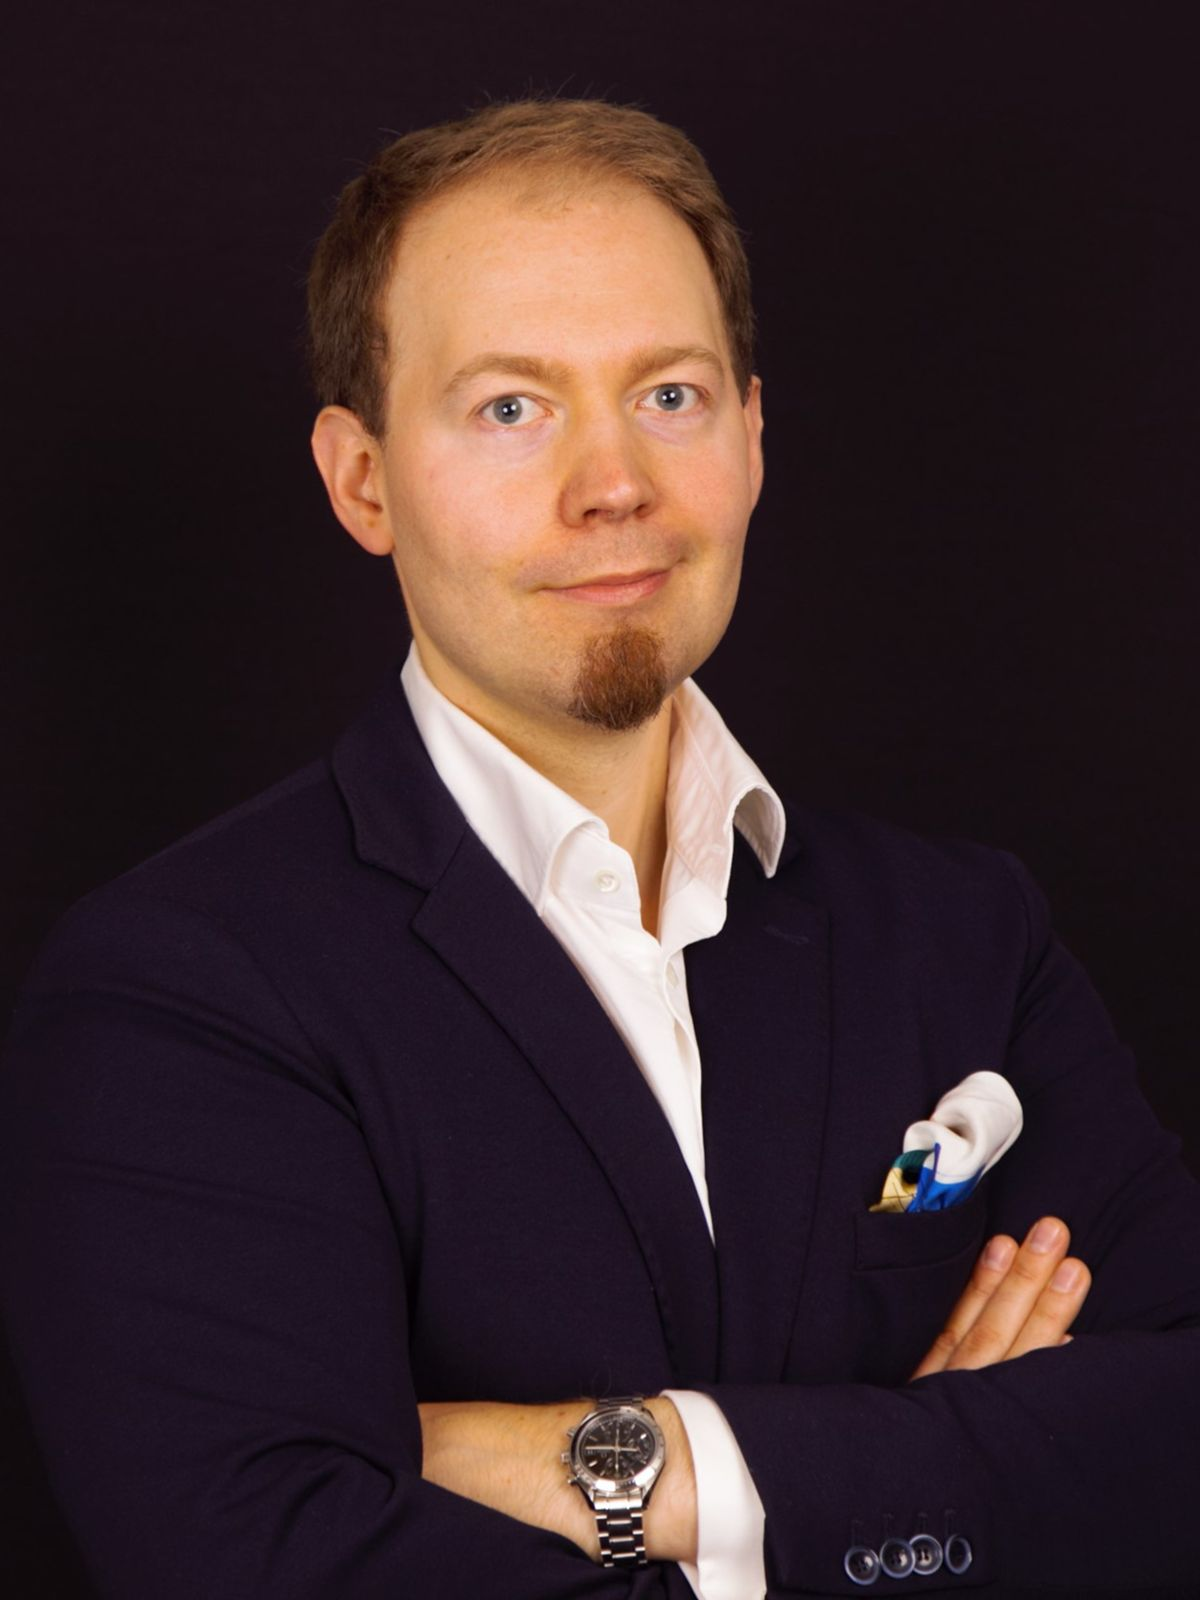 Onomondo Names Antti Korhonen has its New Senior Account Executive, Onomondo